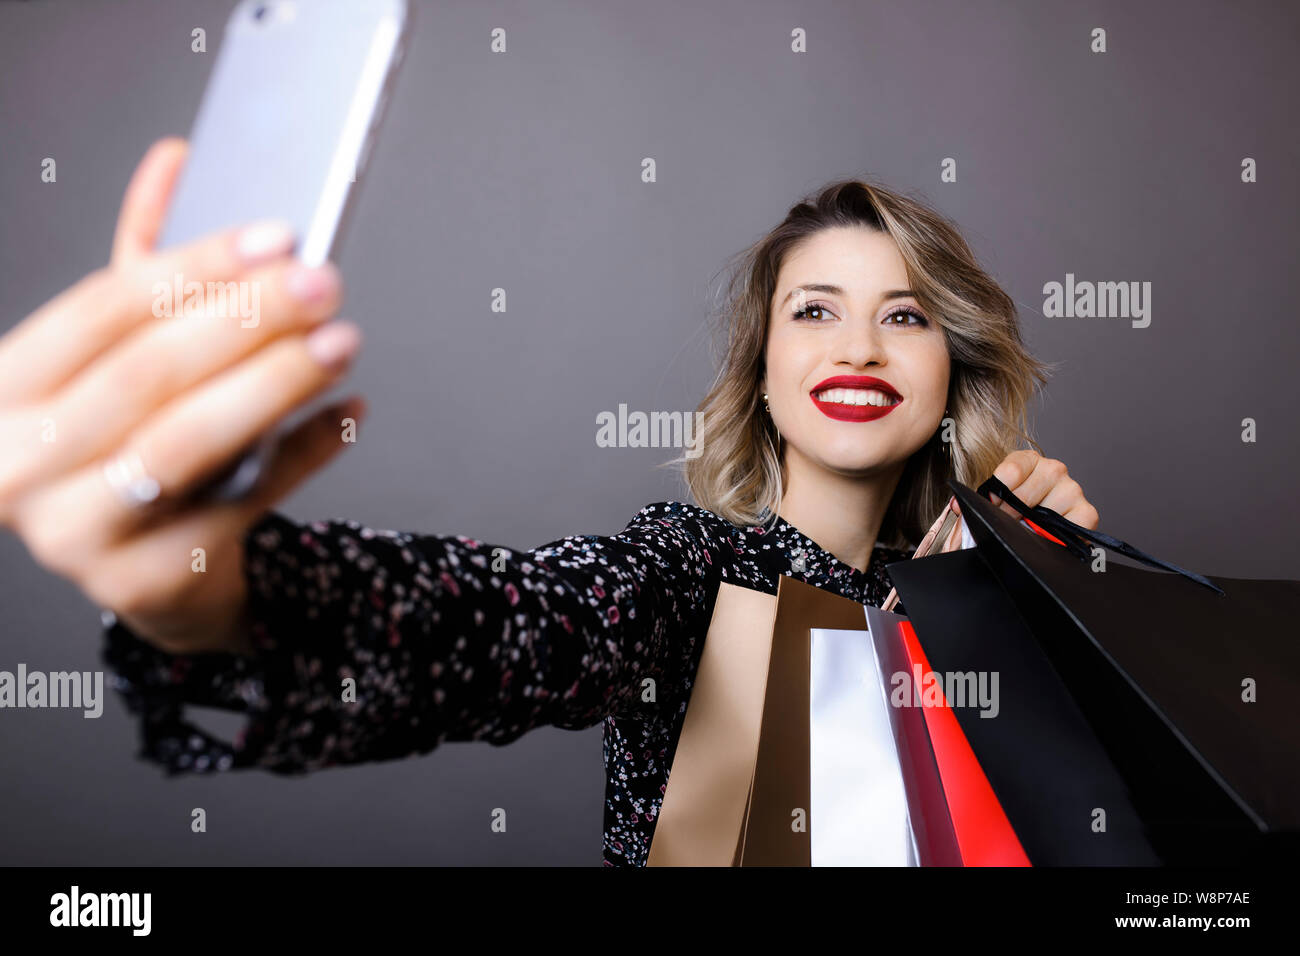 Young smiling woman with bright makeup and curly hair in patterned blouse holding shopping bags and making selfie with mobile phone on gray background Stock Photo